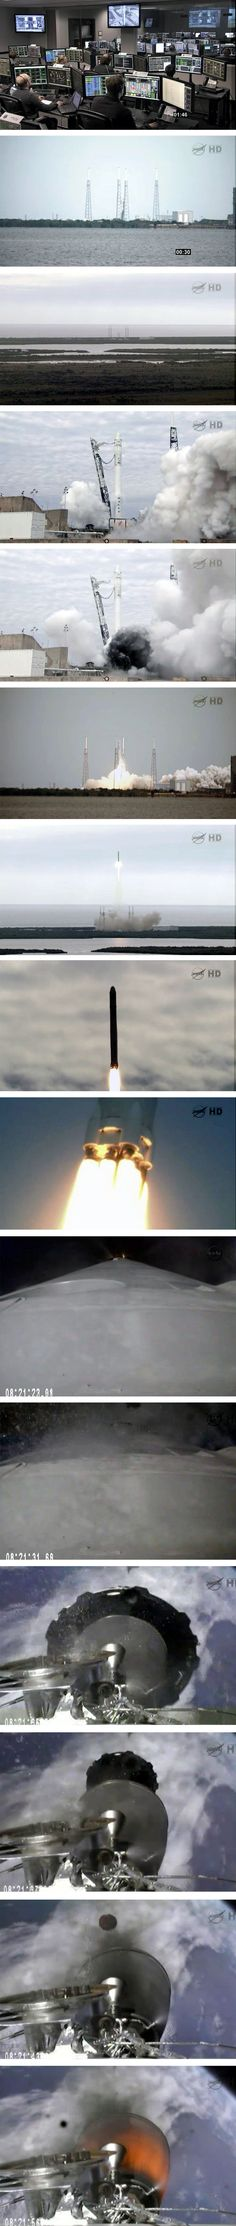 The SpaceX Rocket Launch